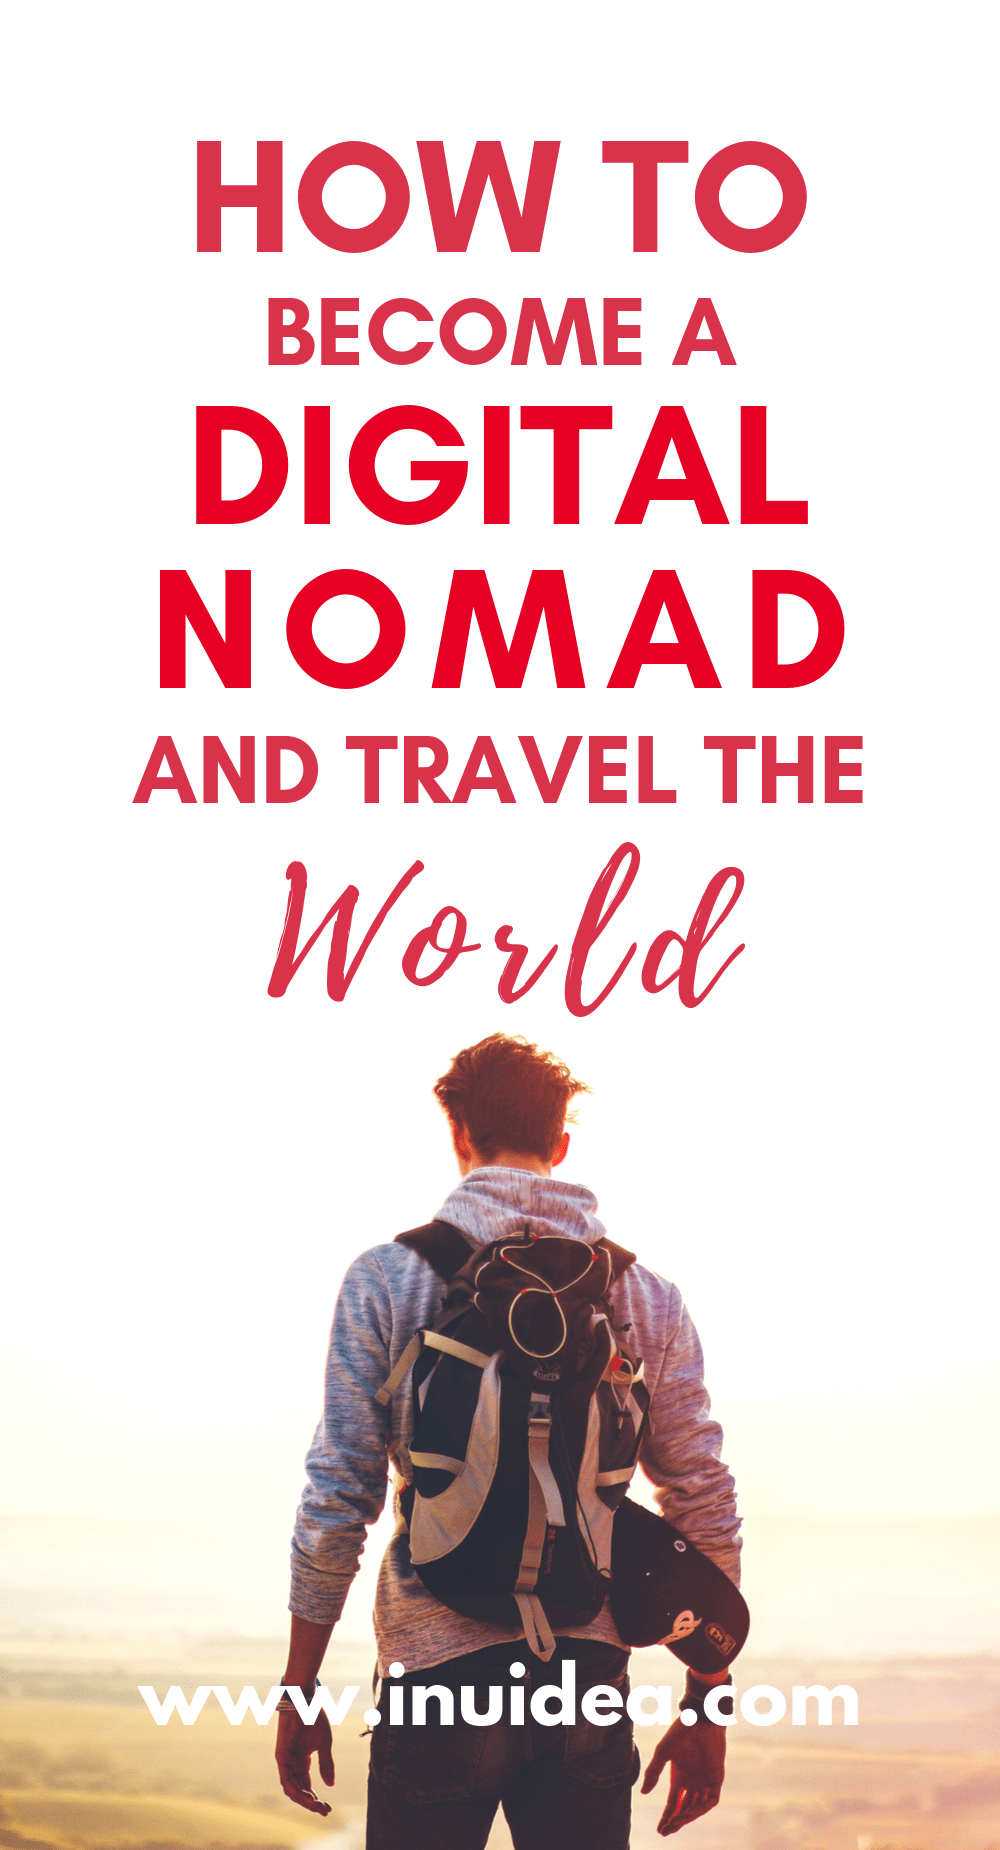 How To Become a Digital Nomad and Travel The World